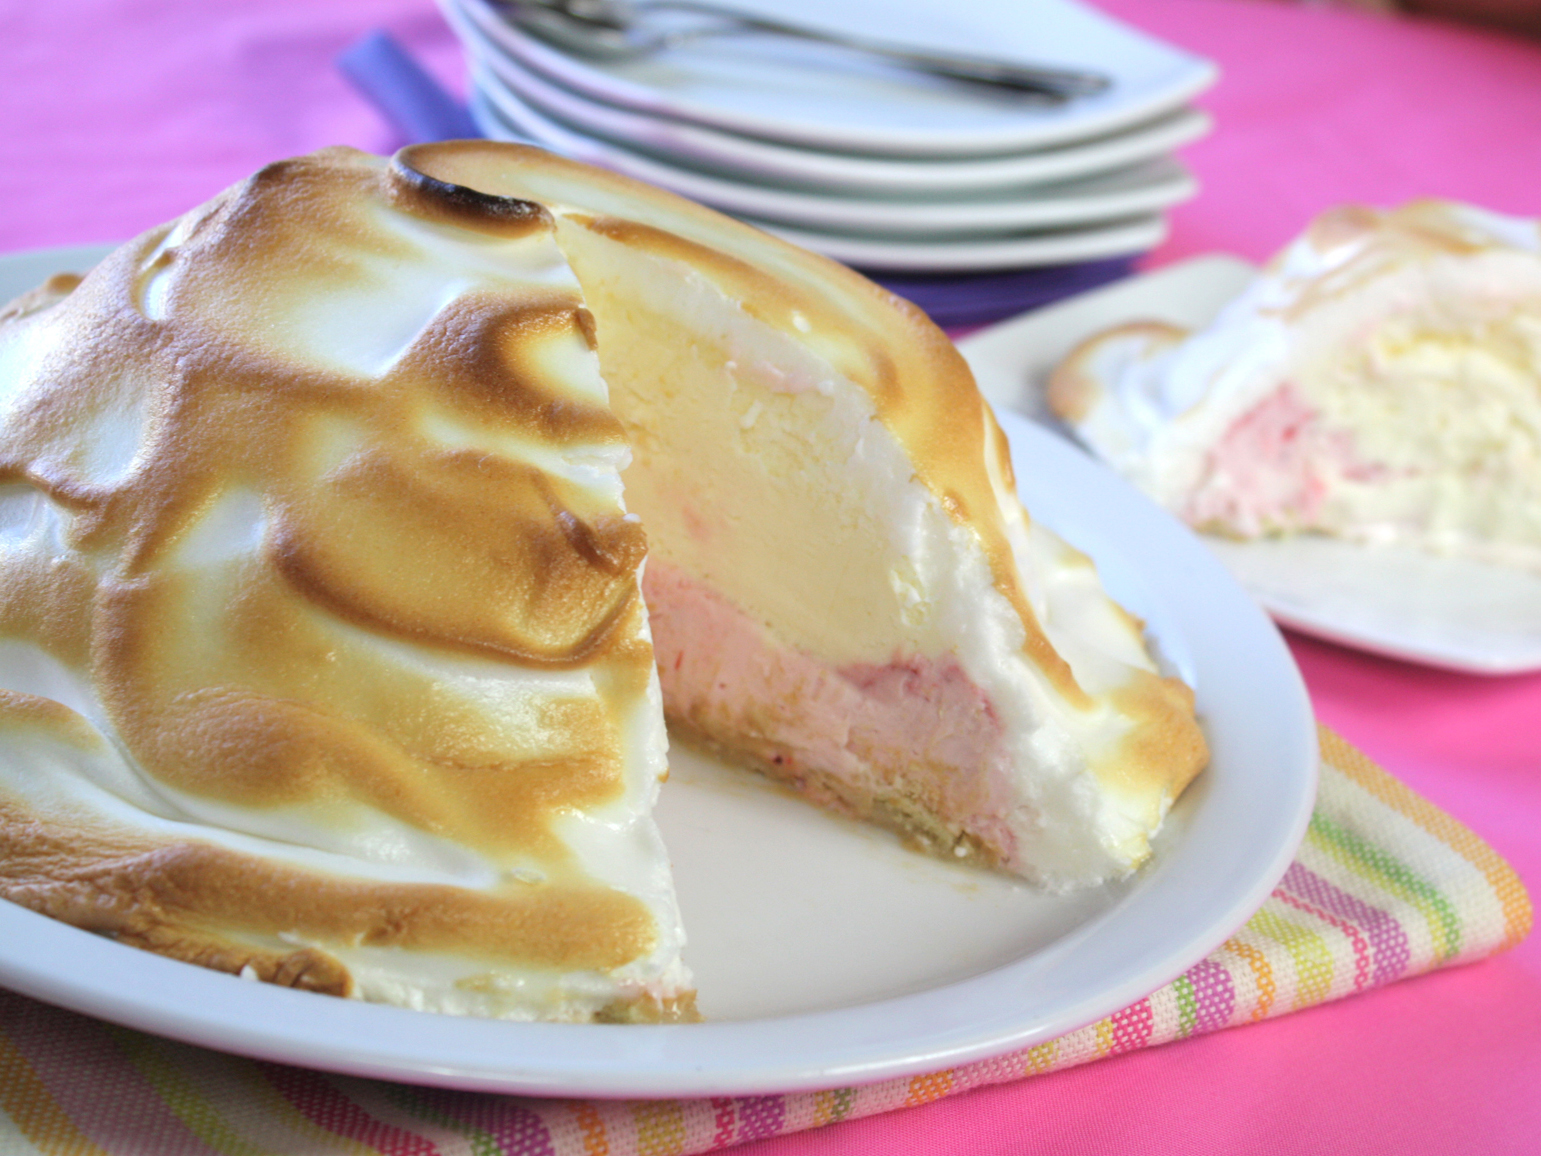 What is a Baked Alaska?